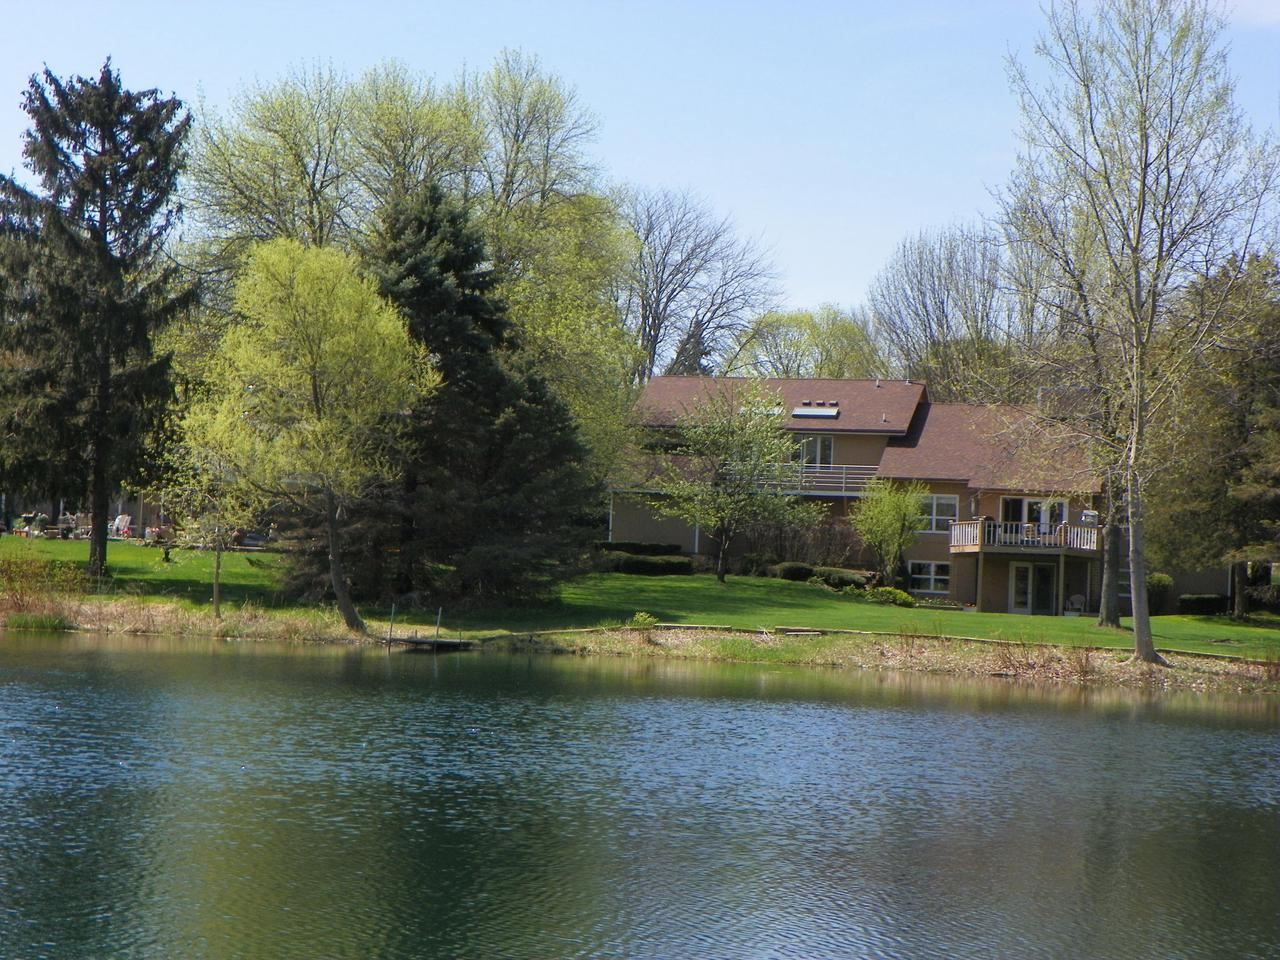 216 Evergreen Ln, Twin Lakes, WI 53181 - MLS#: 1689268